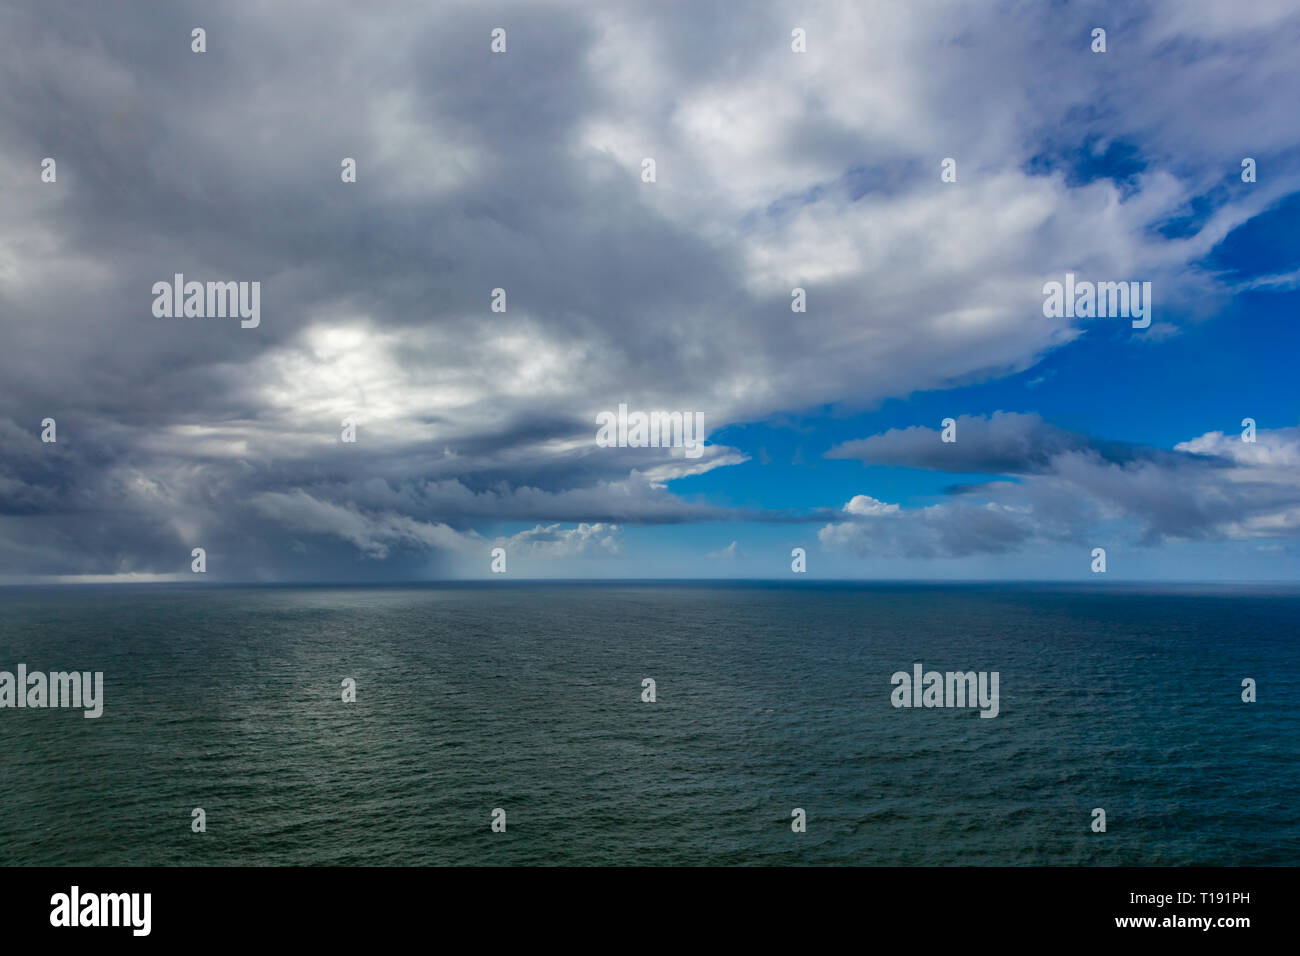 Calm flat ocean view with clouds and blue sky Stock Photo